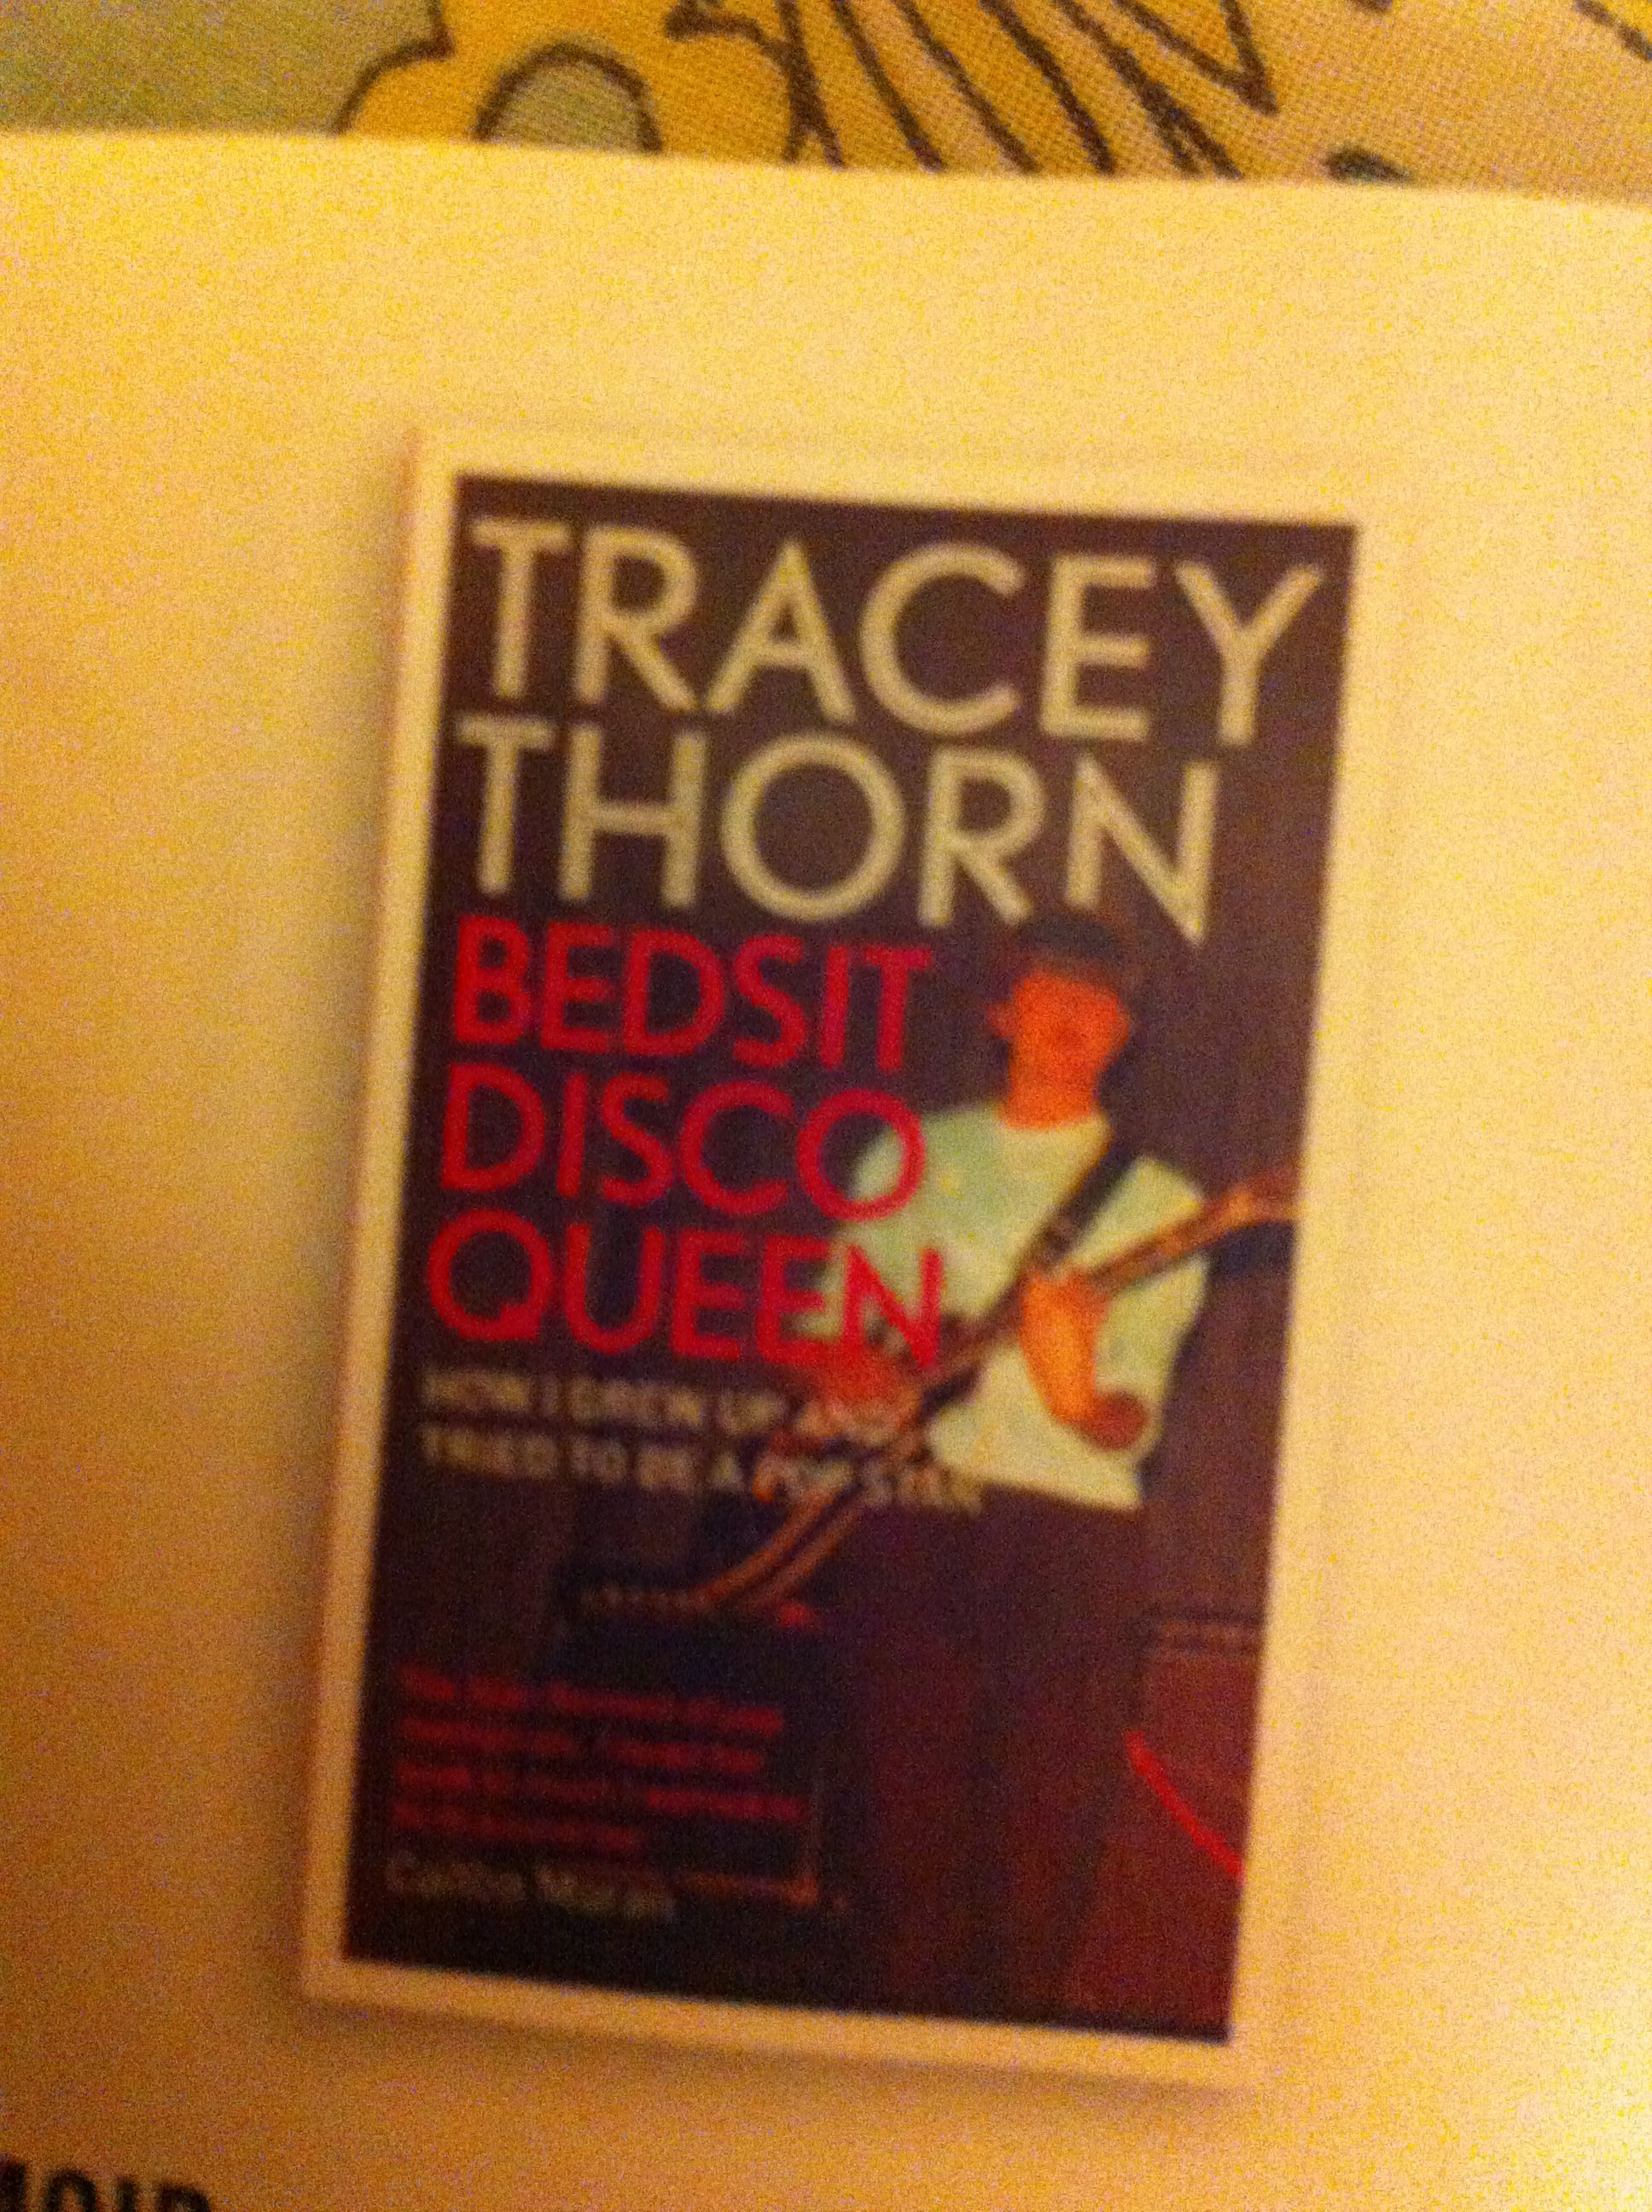 bedsit disco queen thorn tracey